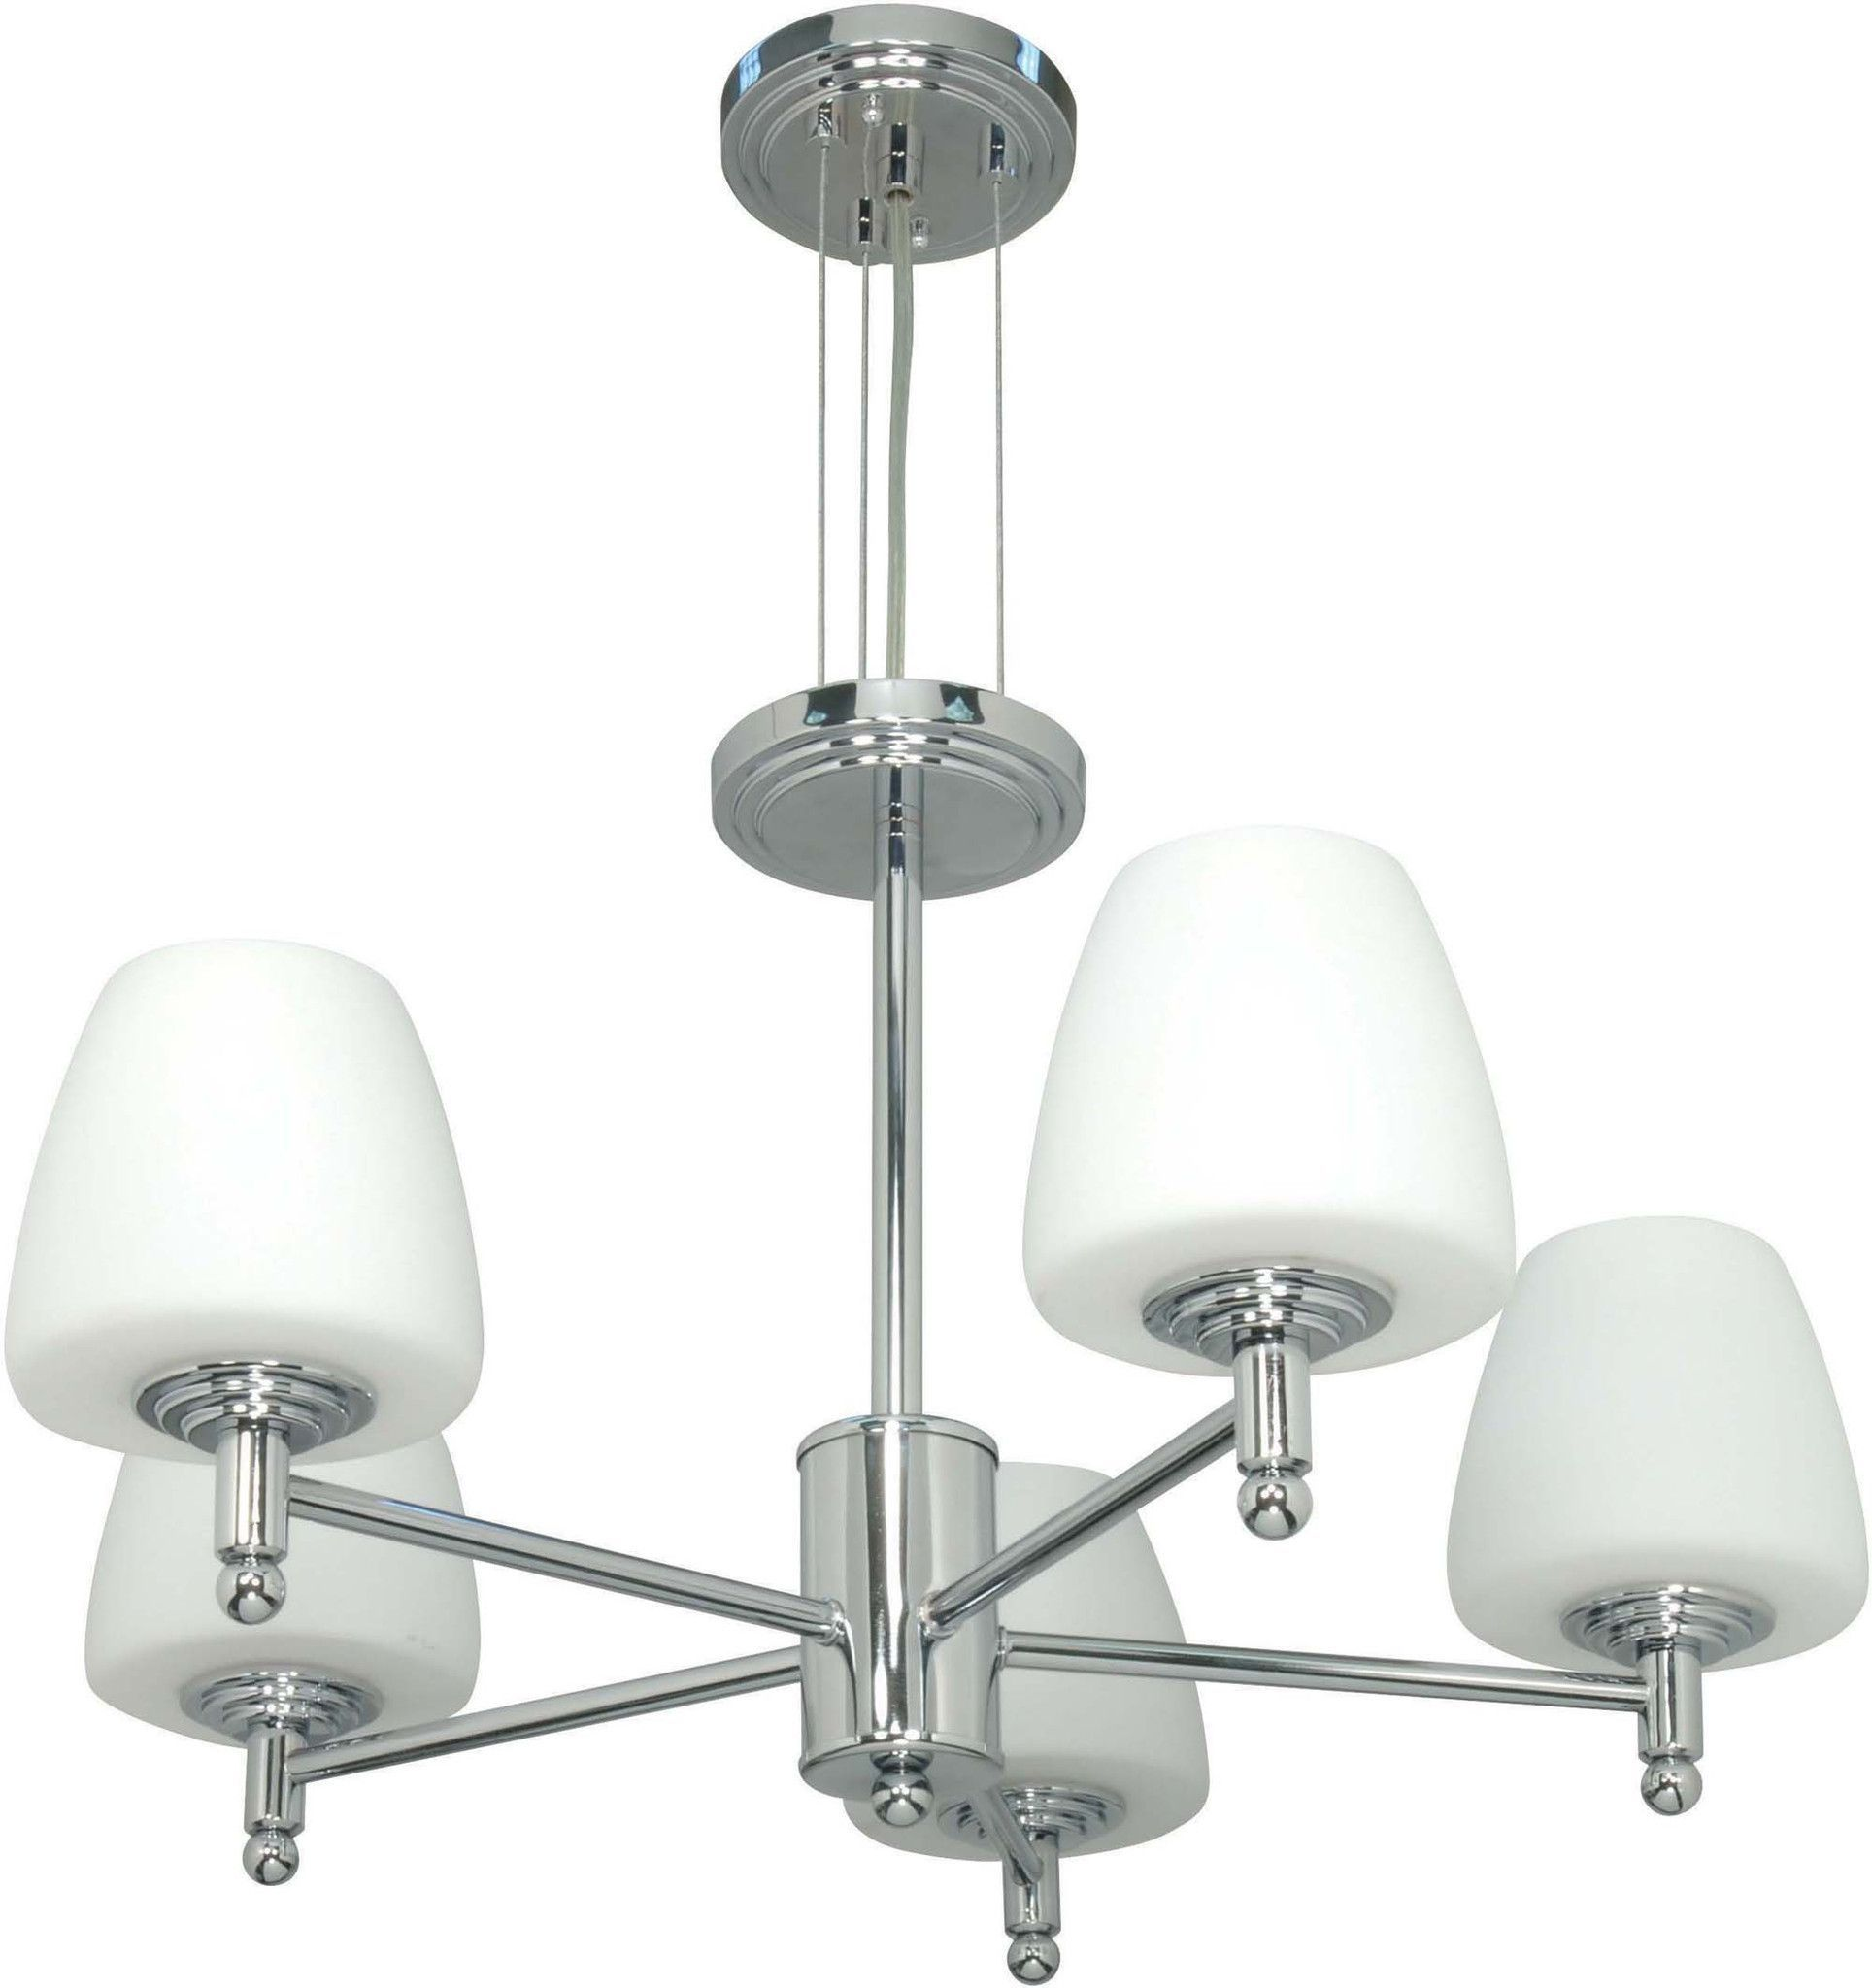 Nuvo galileo 5 light 24 inch halogen chandelier w satin nuvo galileo 5 light 24 inch halogen chandelier w satin white arubaitofo Image collections